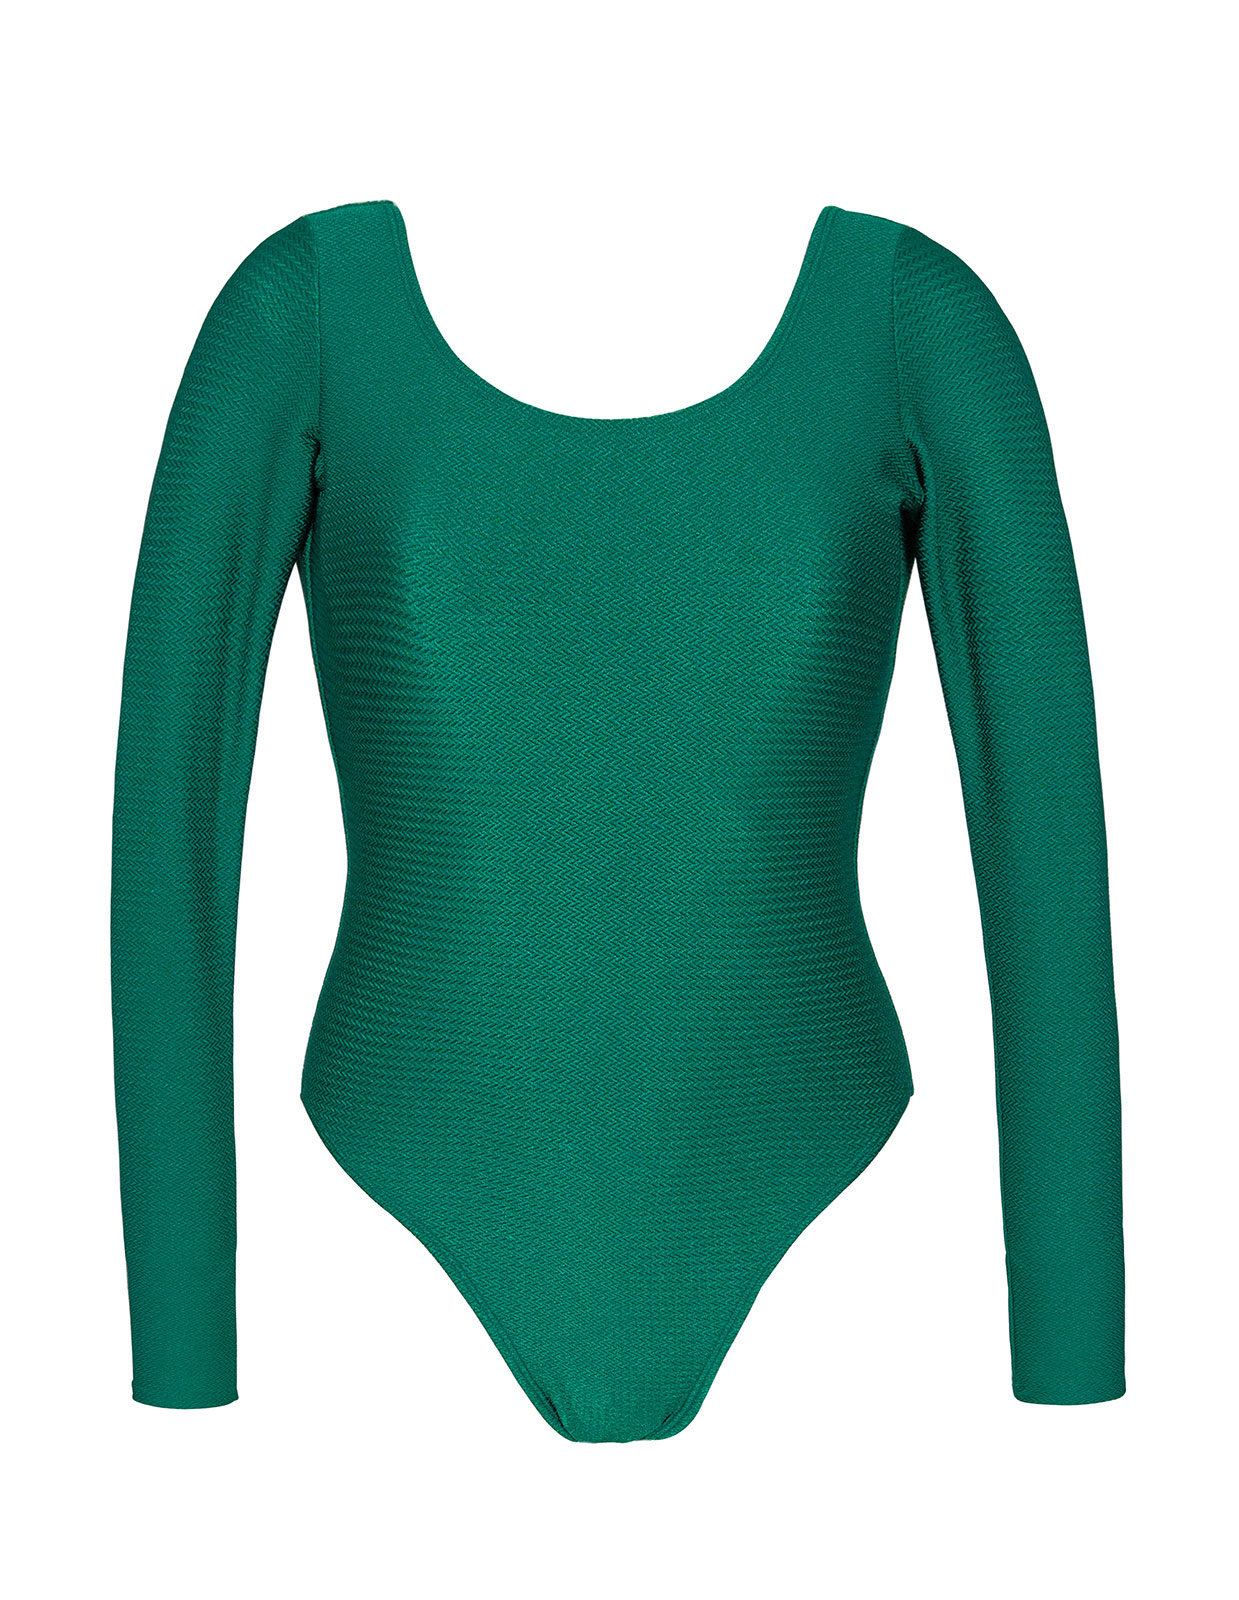 241c4a2f723e3 Green textured bathing body glove with long sleeves - DUNA GREEN BODY ...